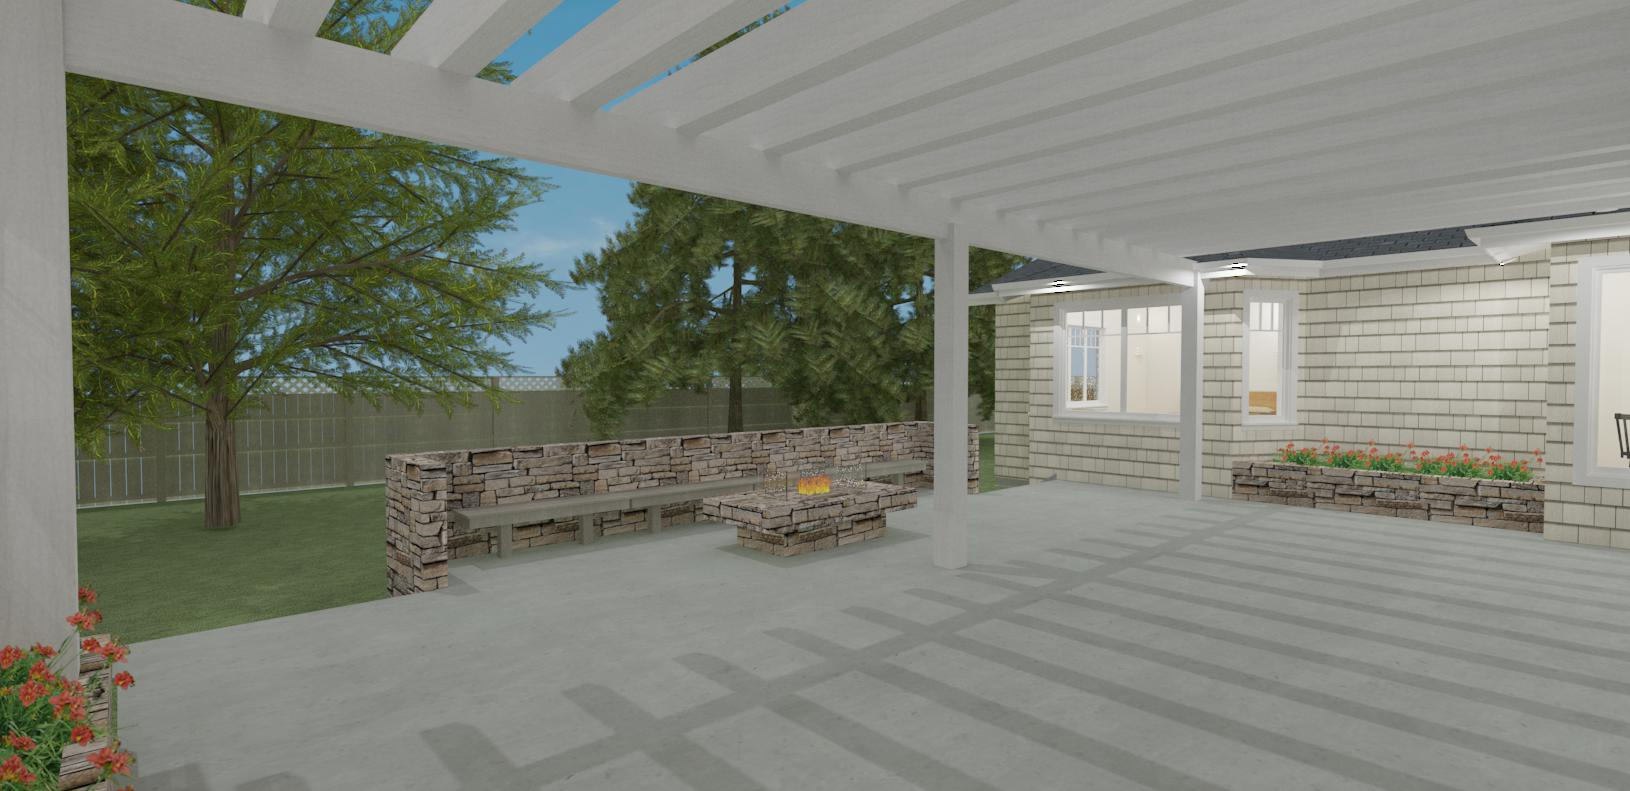 Proposed Courtyard Patio